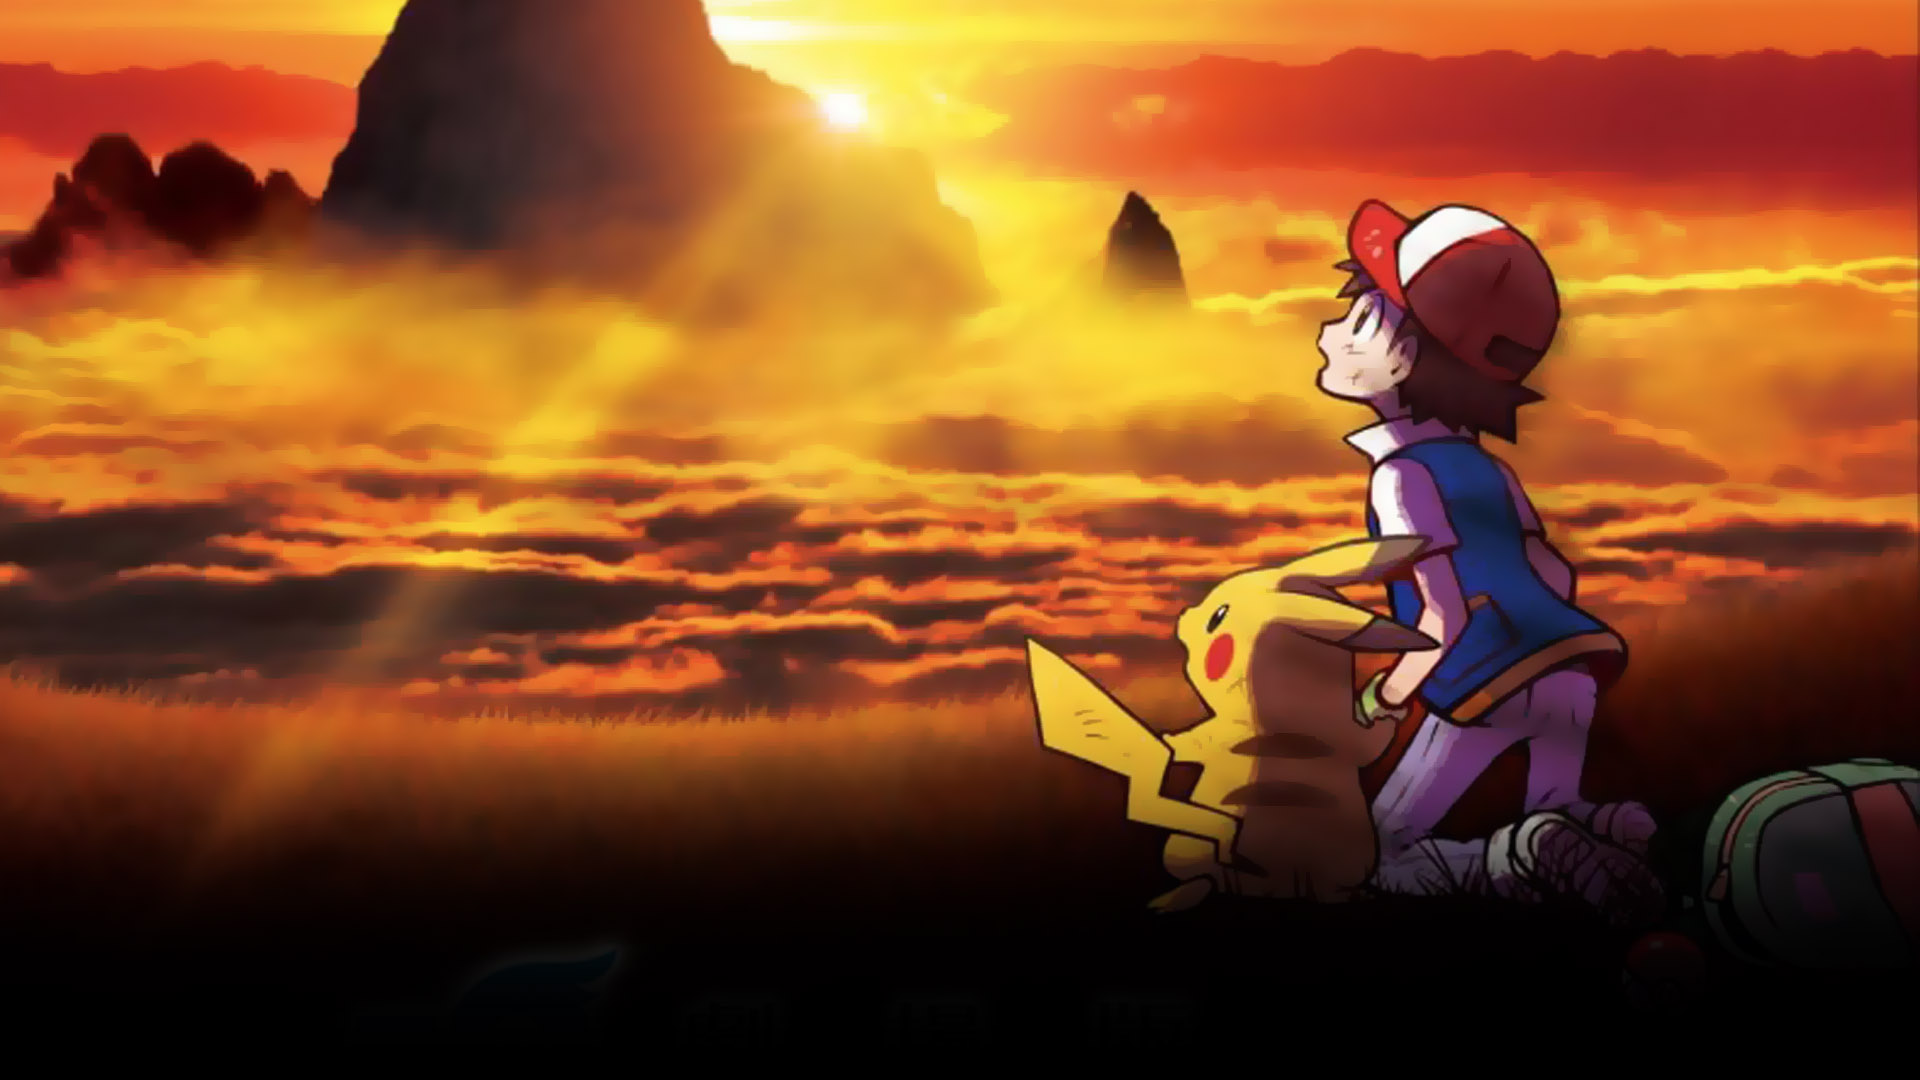 Pokemon I Choose You Looking Back At The Previous Movie